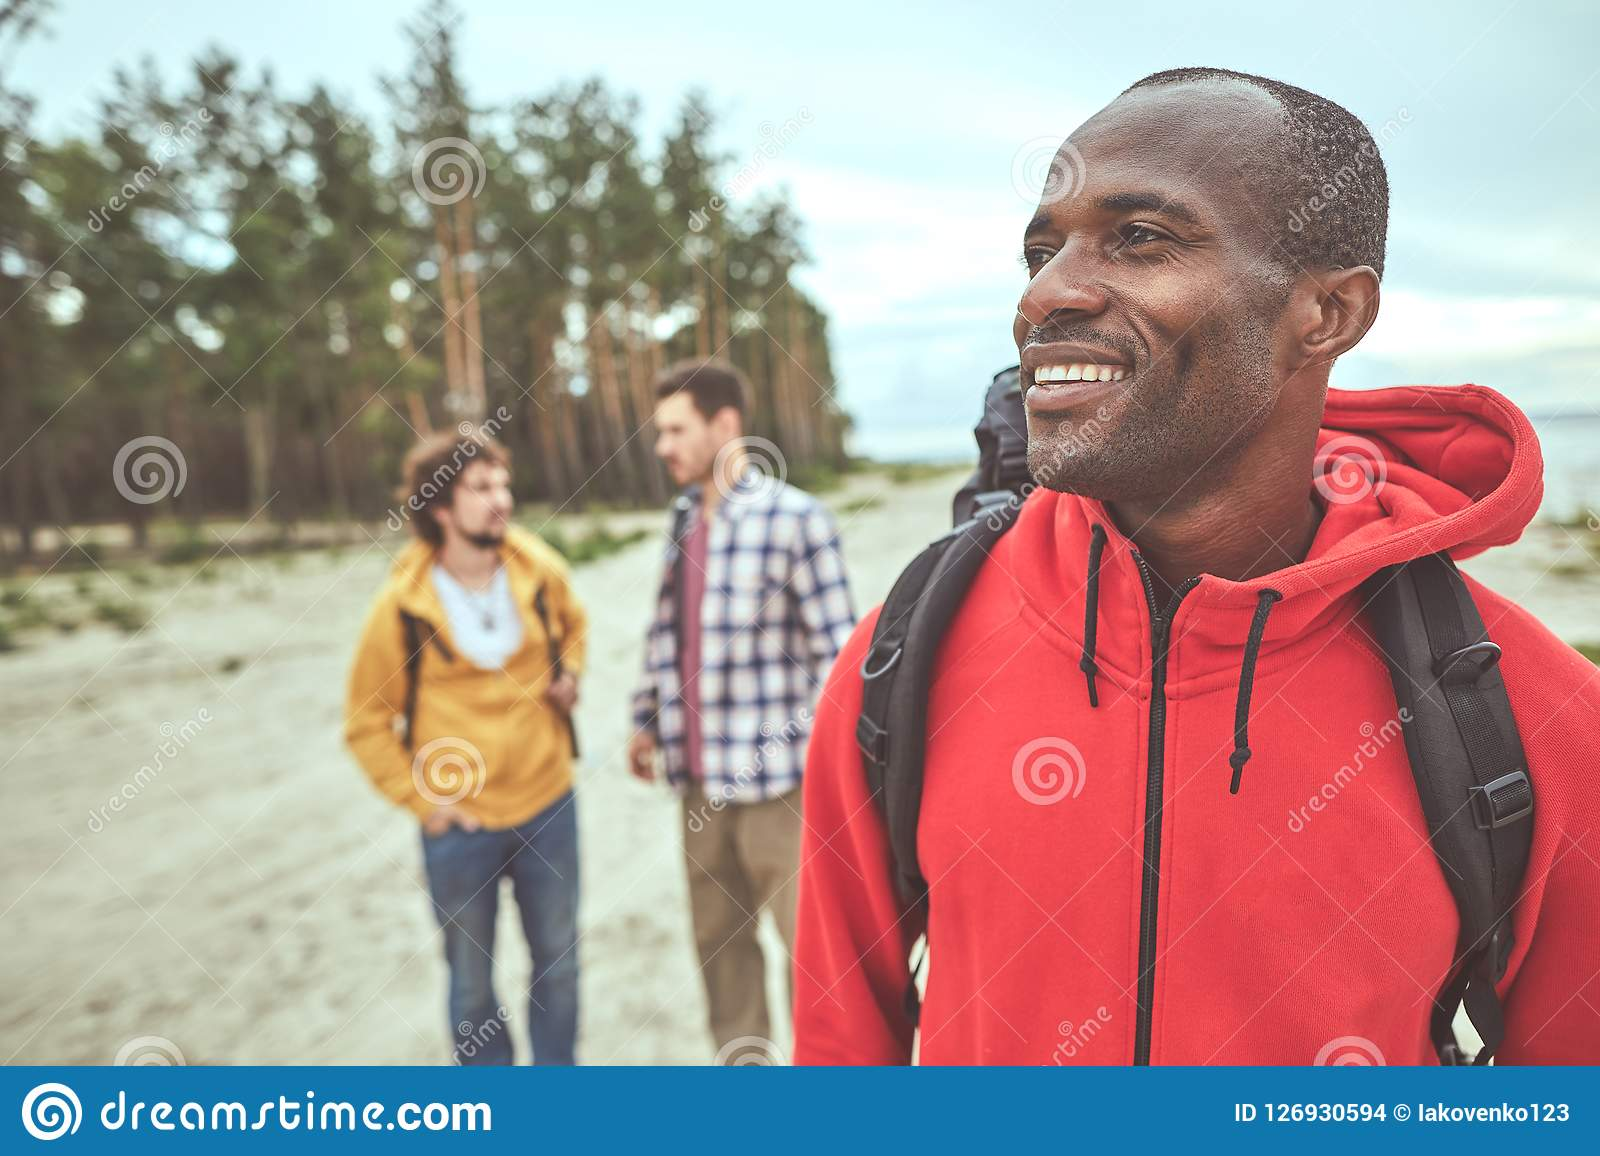 Cheerful man enjoying his journey with friends